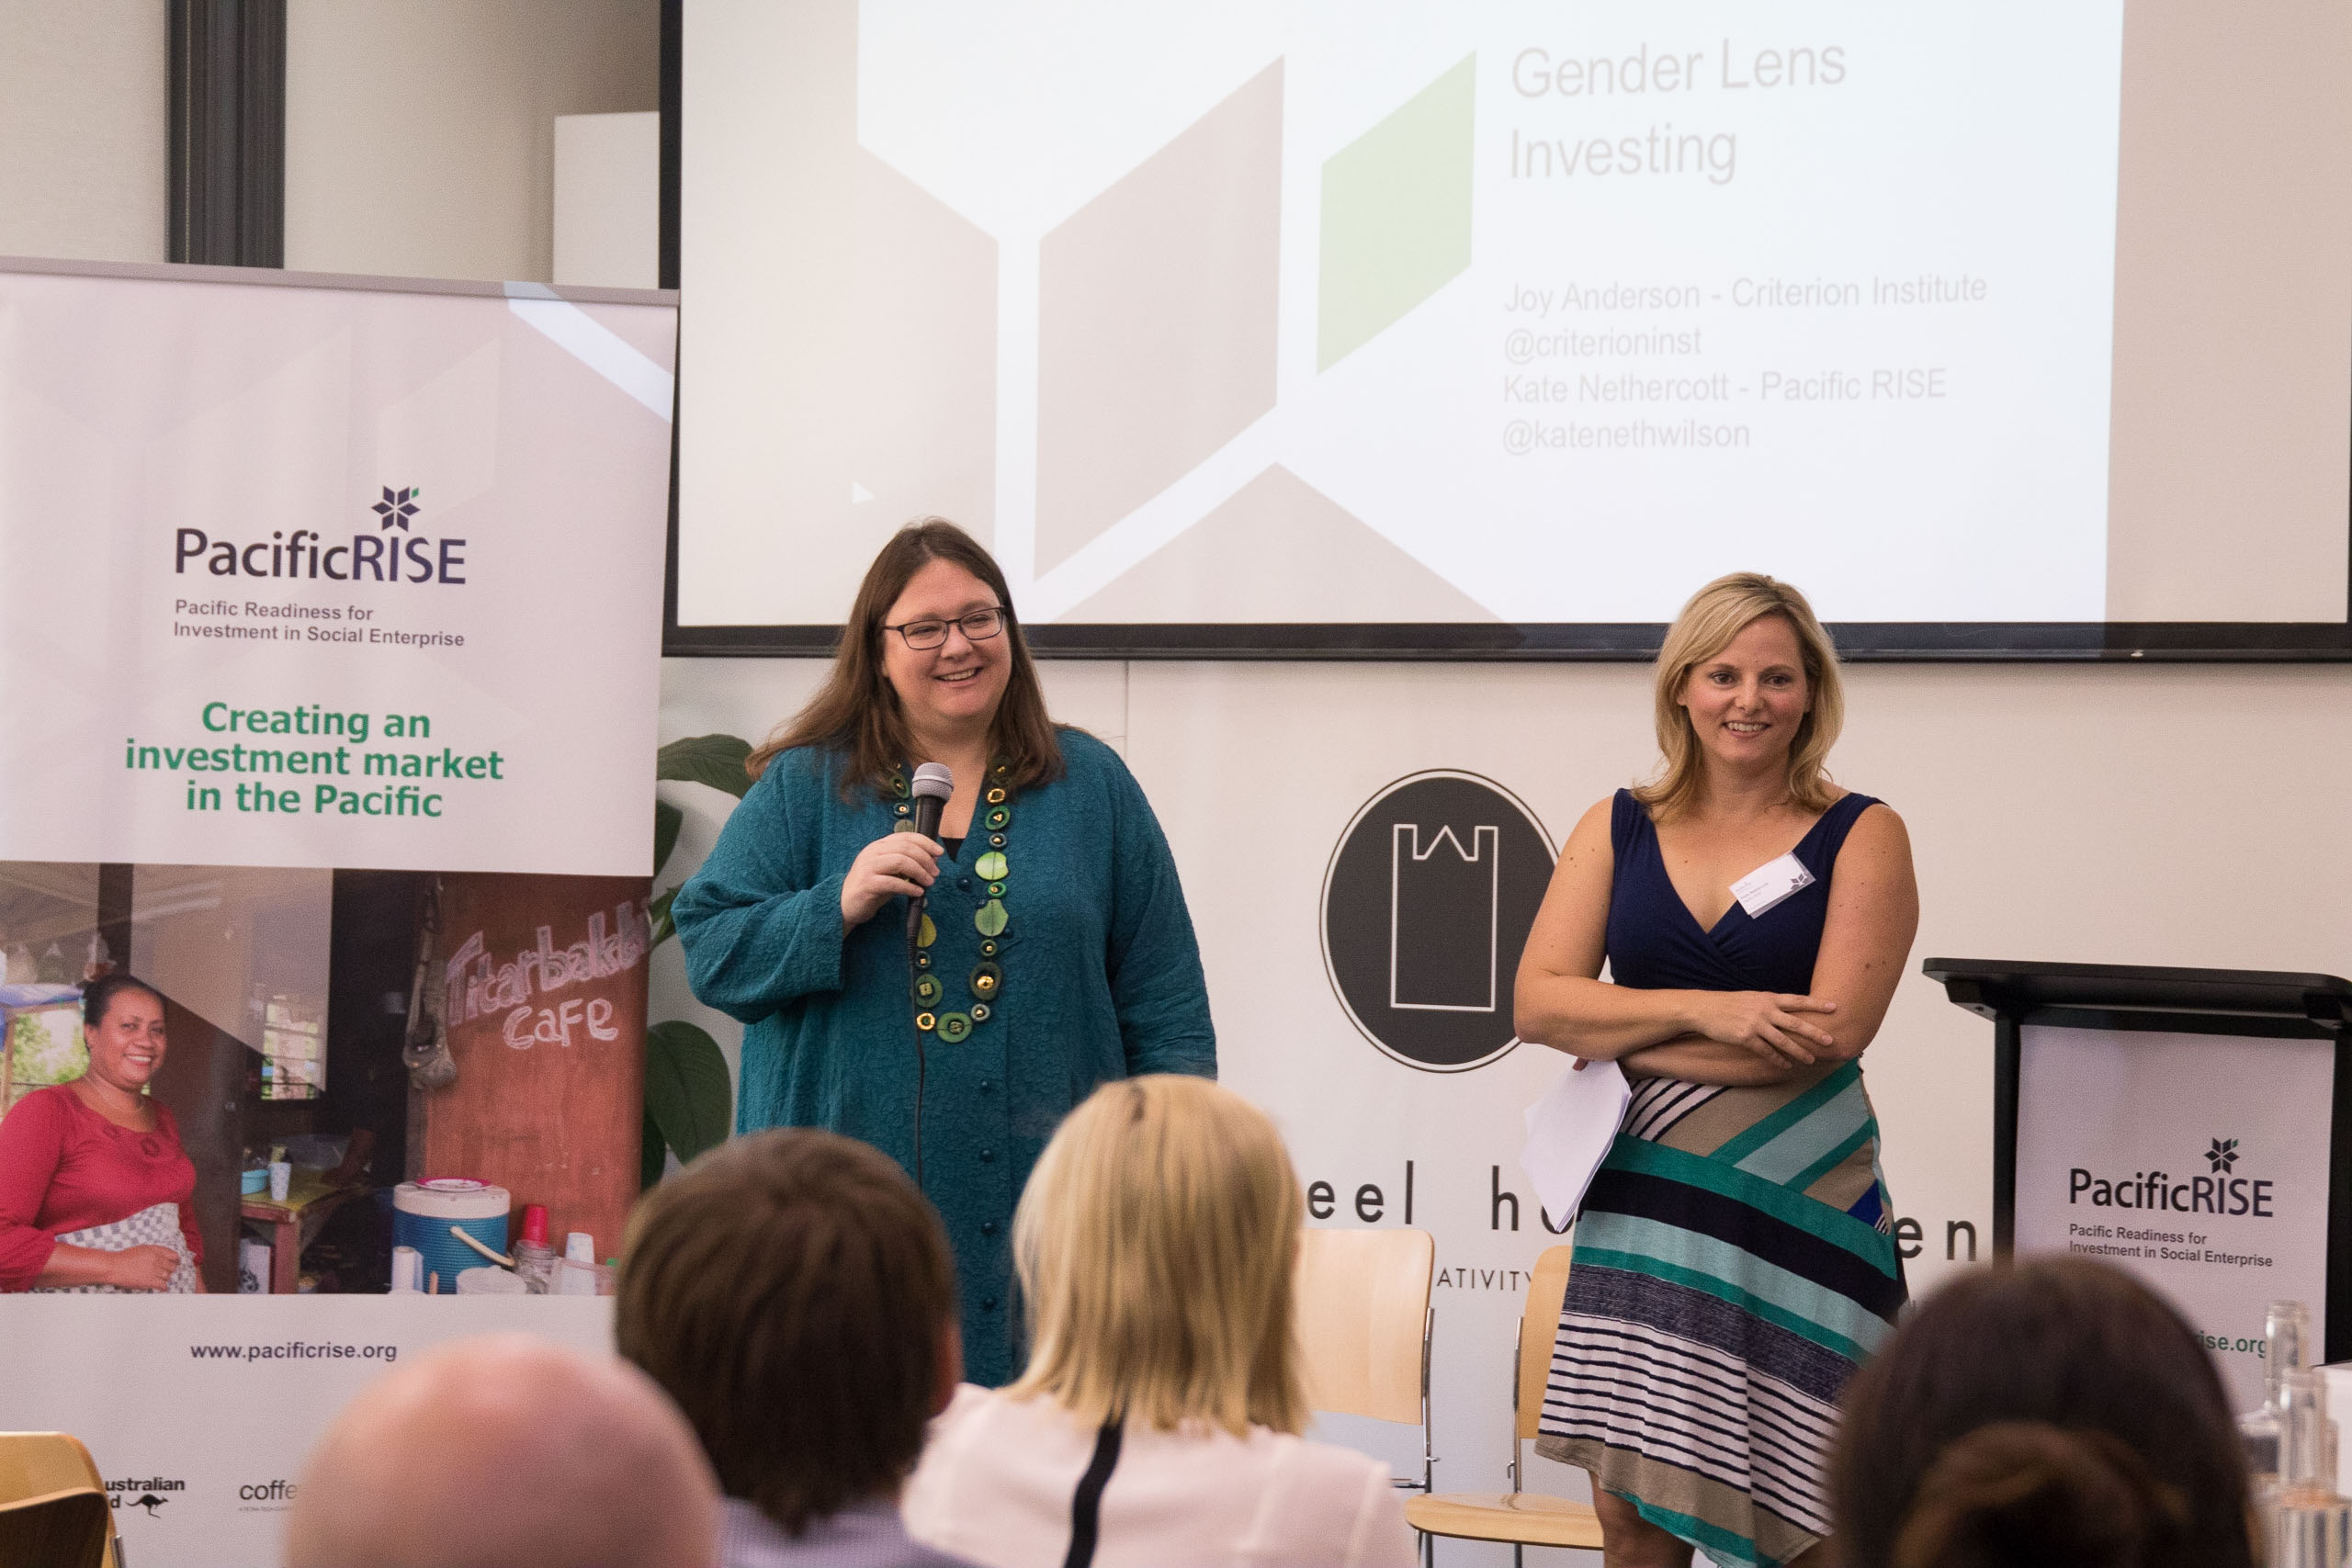 Joy Anderson (Criterion Institute) and Kate Nethercott Wilson (Pacific RISE's gender adviser) introducing gender lens investing to attendees of the Pacific RISE launch.